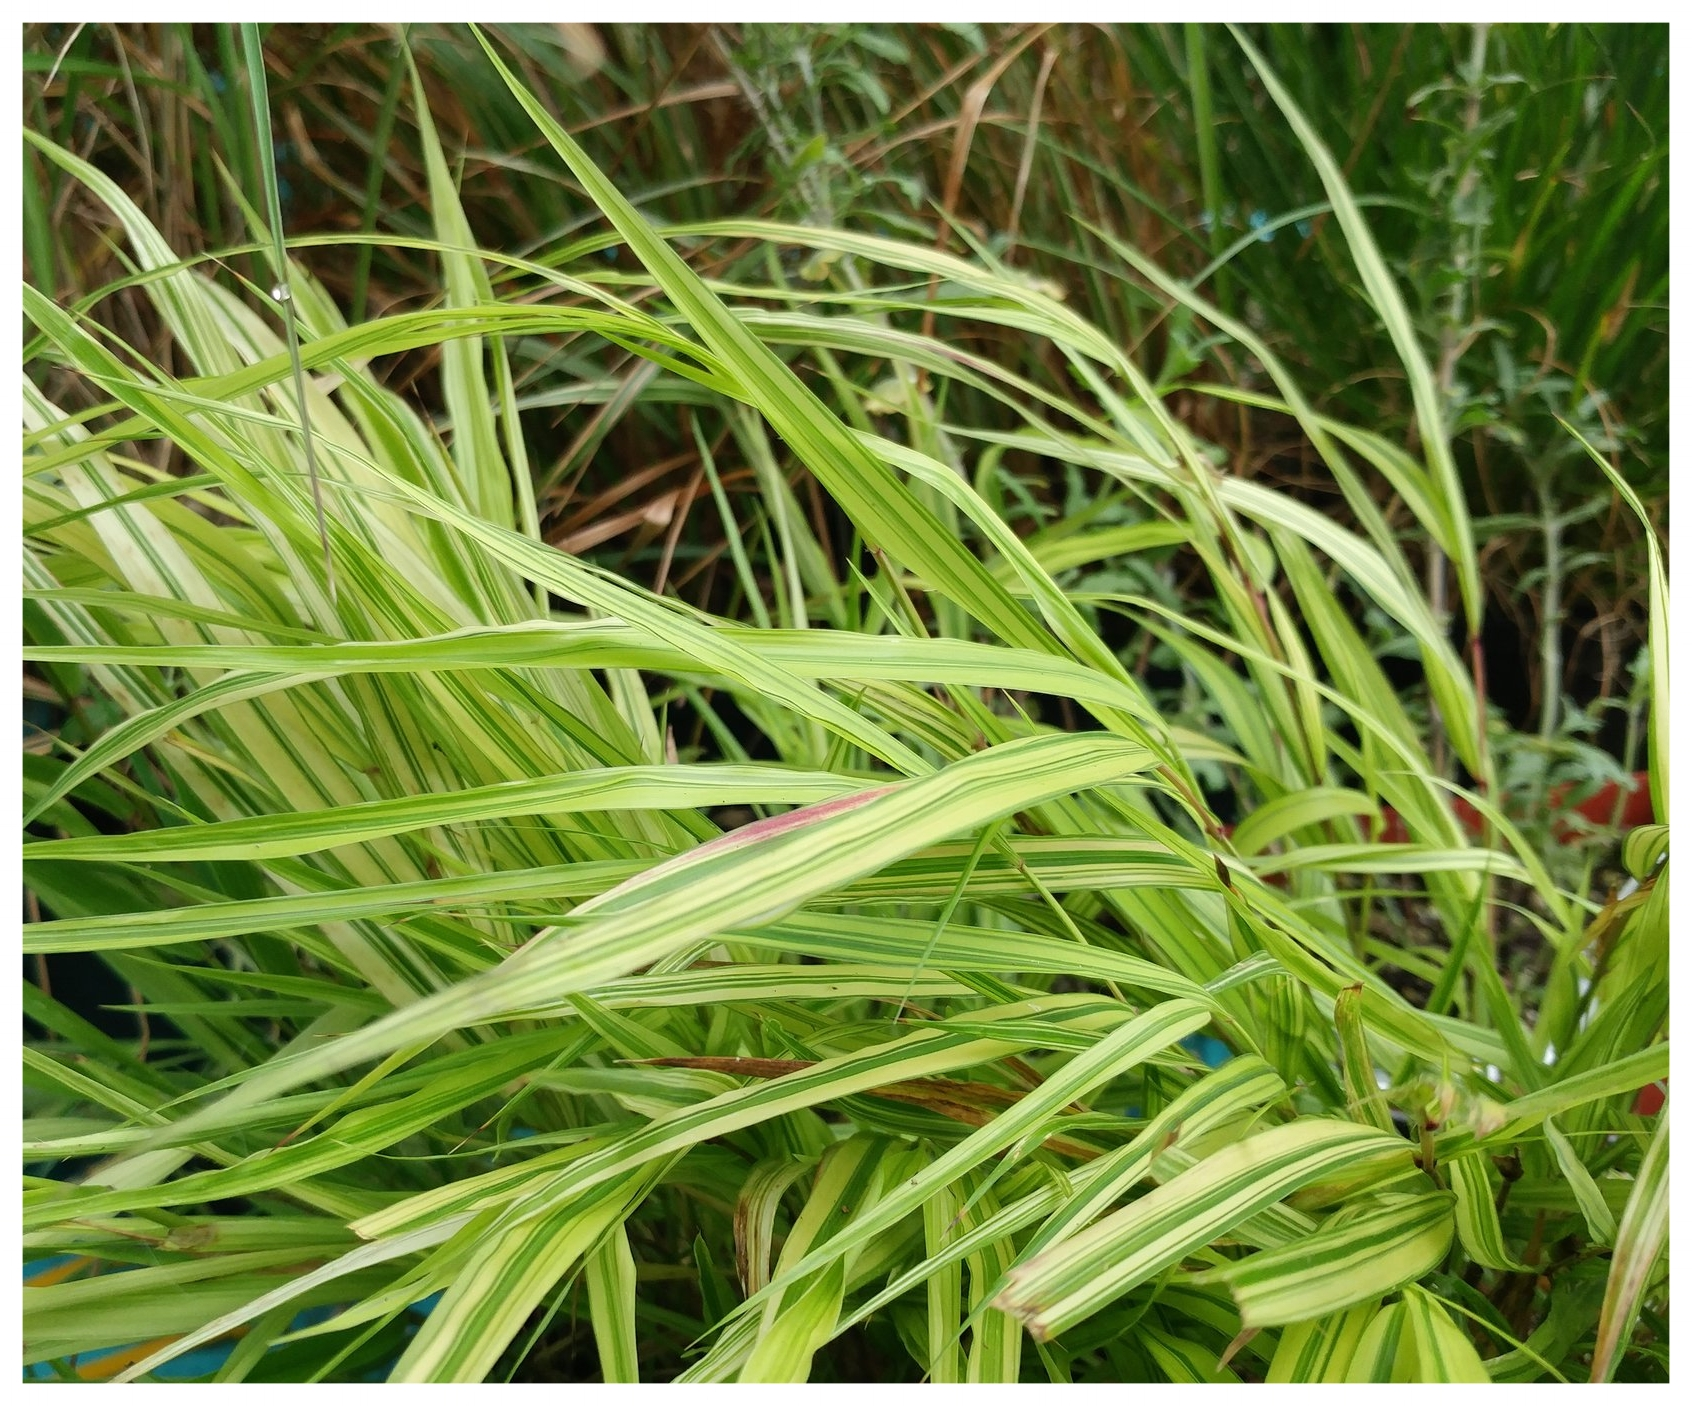 Japanese forest grass offers swaths of lime-green foliage and can grow in part-shade.